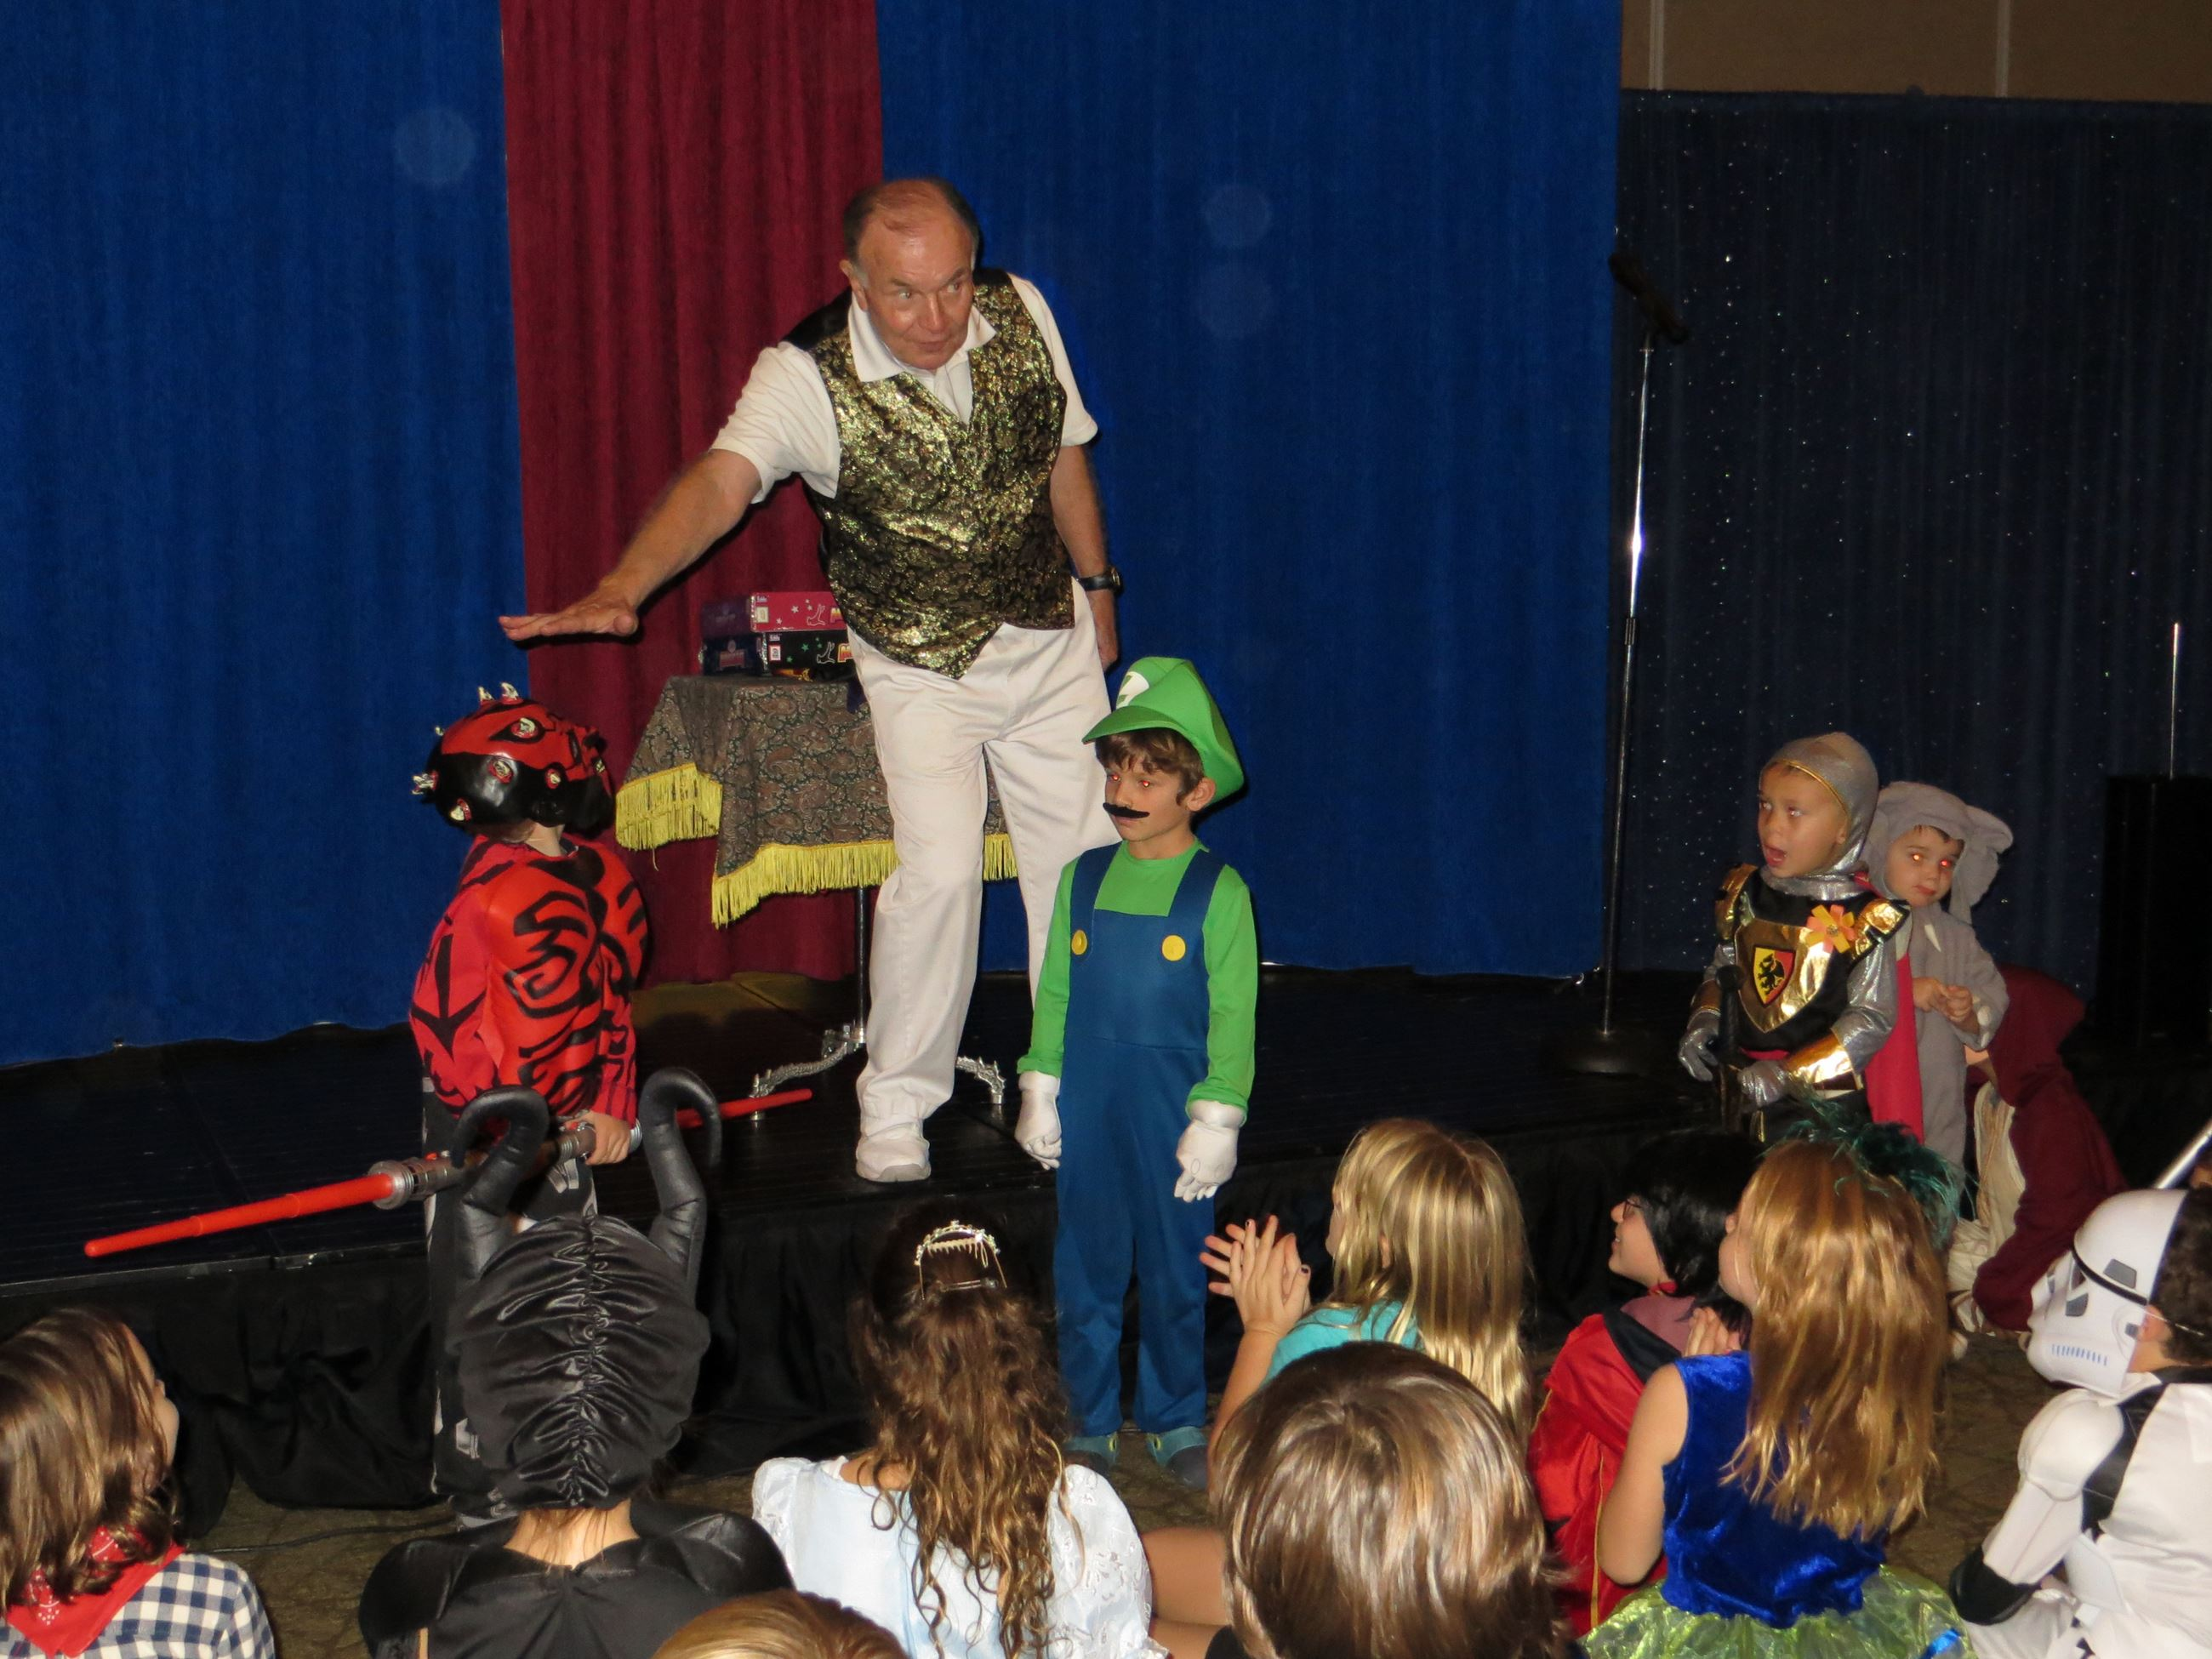 Magician on Stage with 2 kids in costume